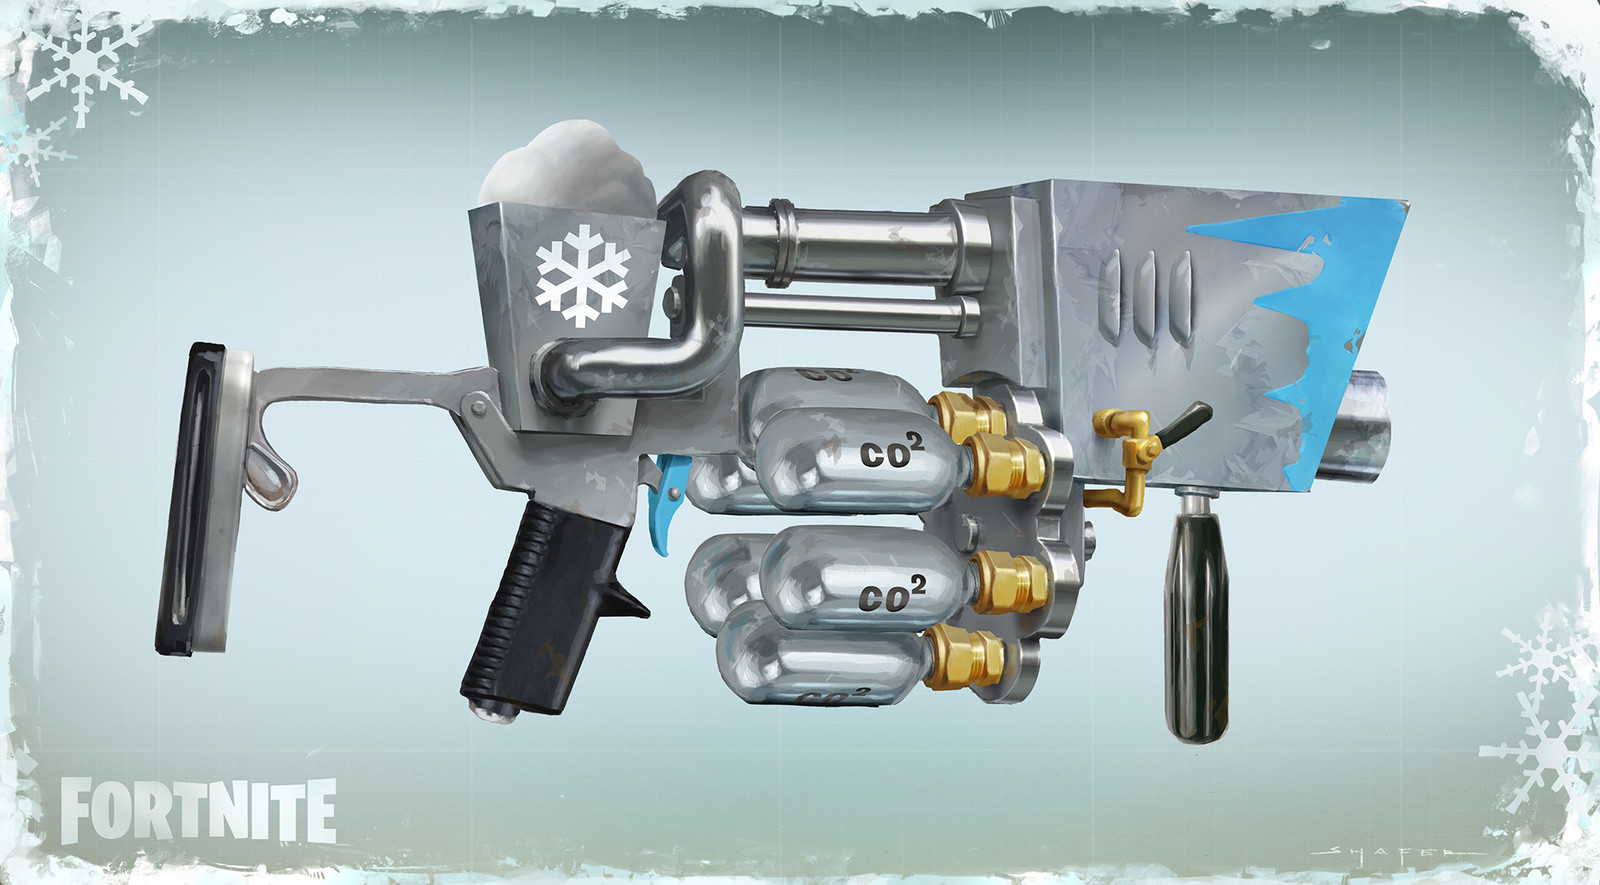 Concept for the Snowball Launcher that temporarily replaced the standard grenade launcher in BR during the Winter Event.